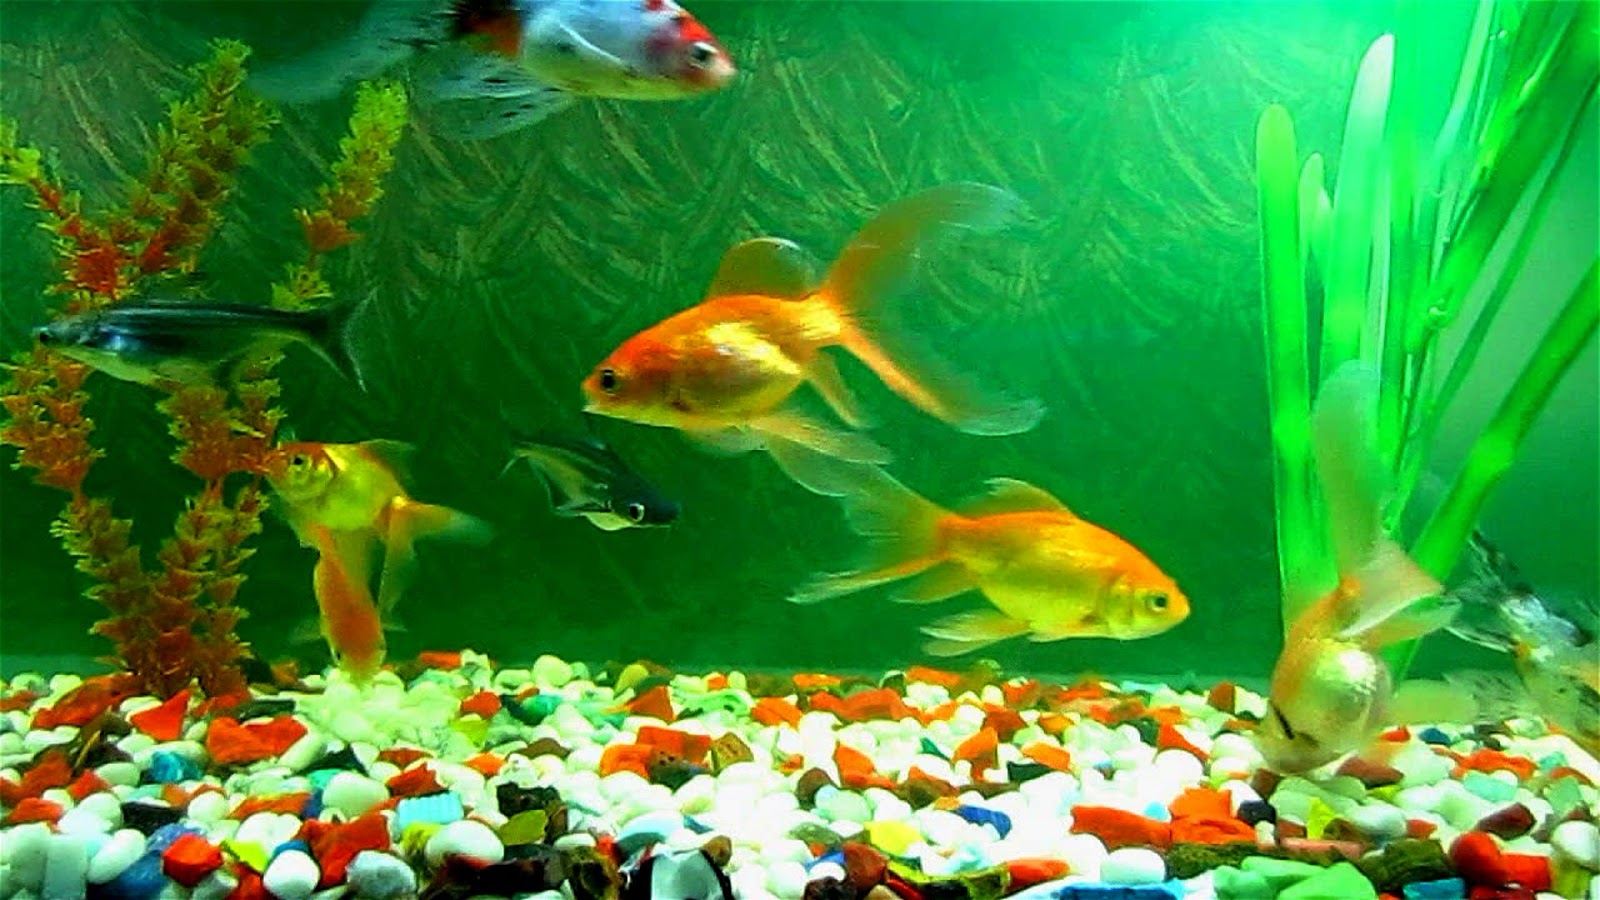 Fish Aquarium : Fish aquarium is a good remedial measure for any Vastudefect. In a ...